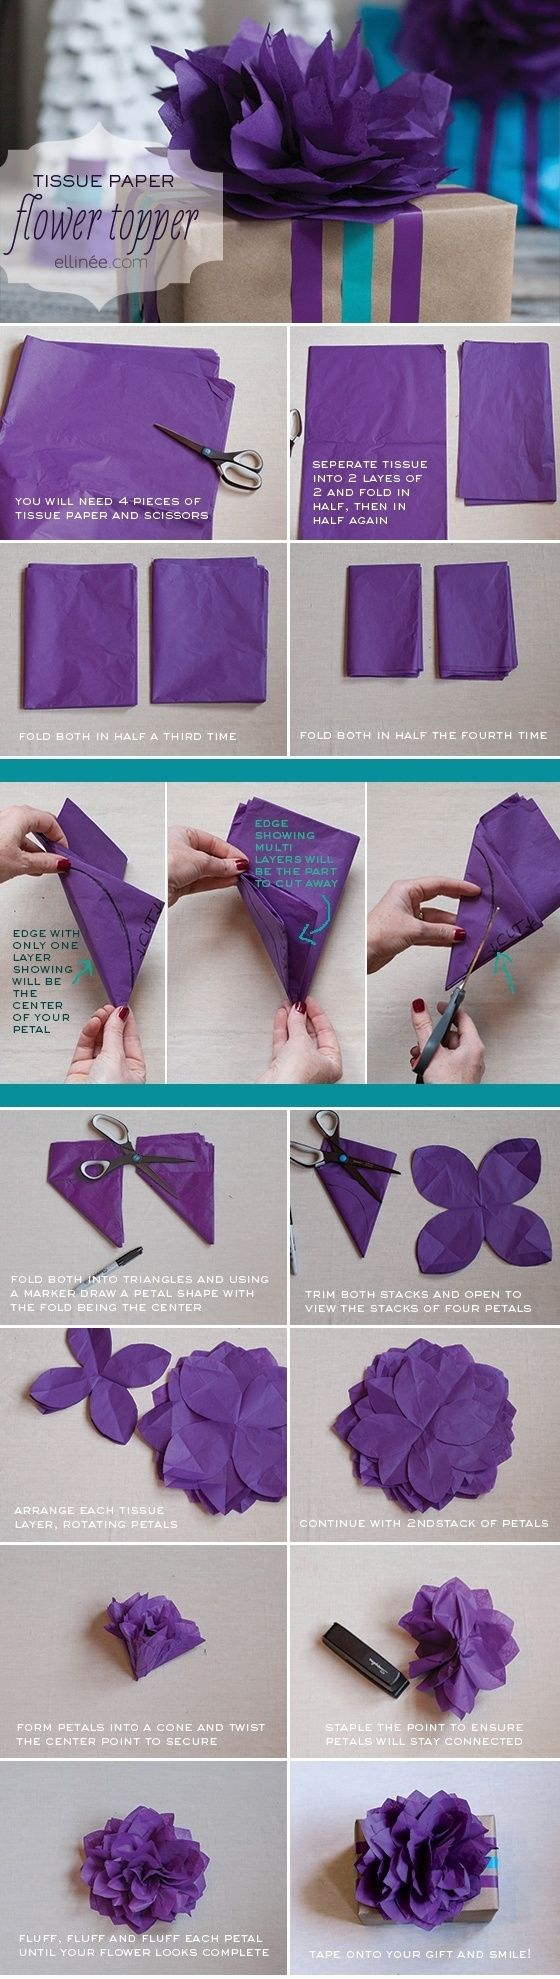 Diy Tissue Paper Flower Pictures Photos And Images For Facebook